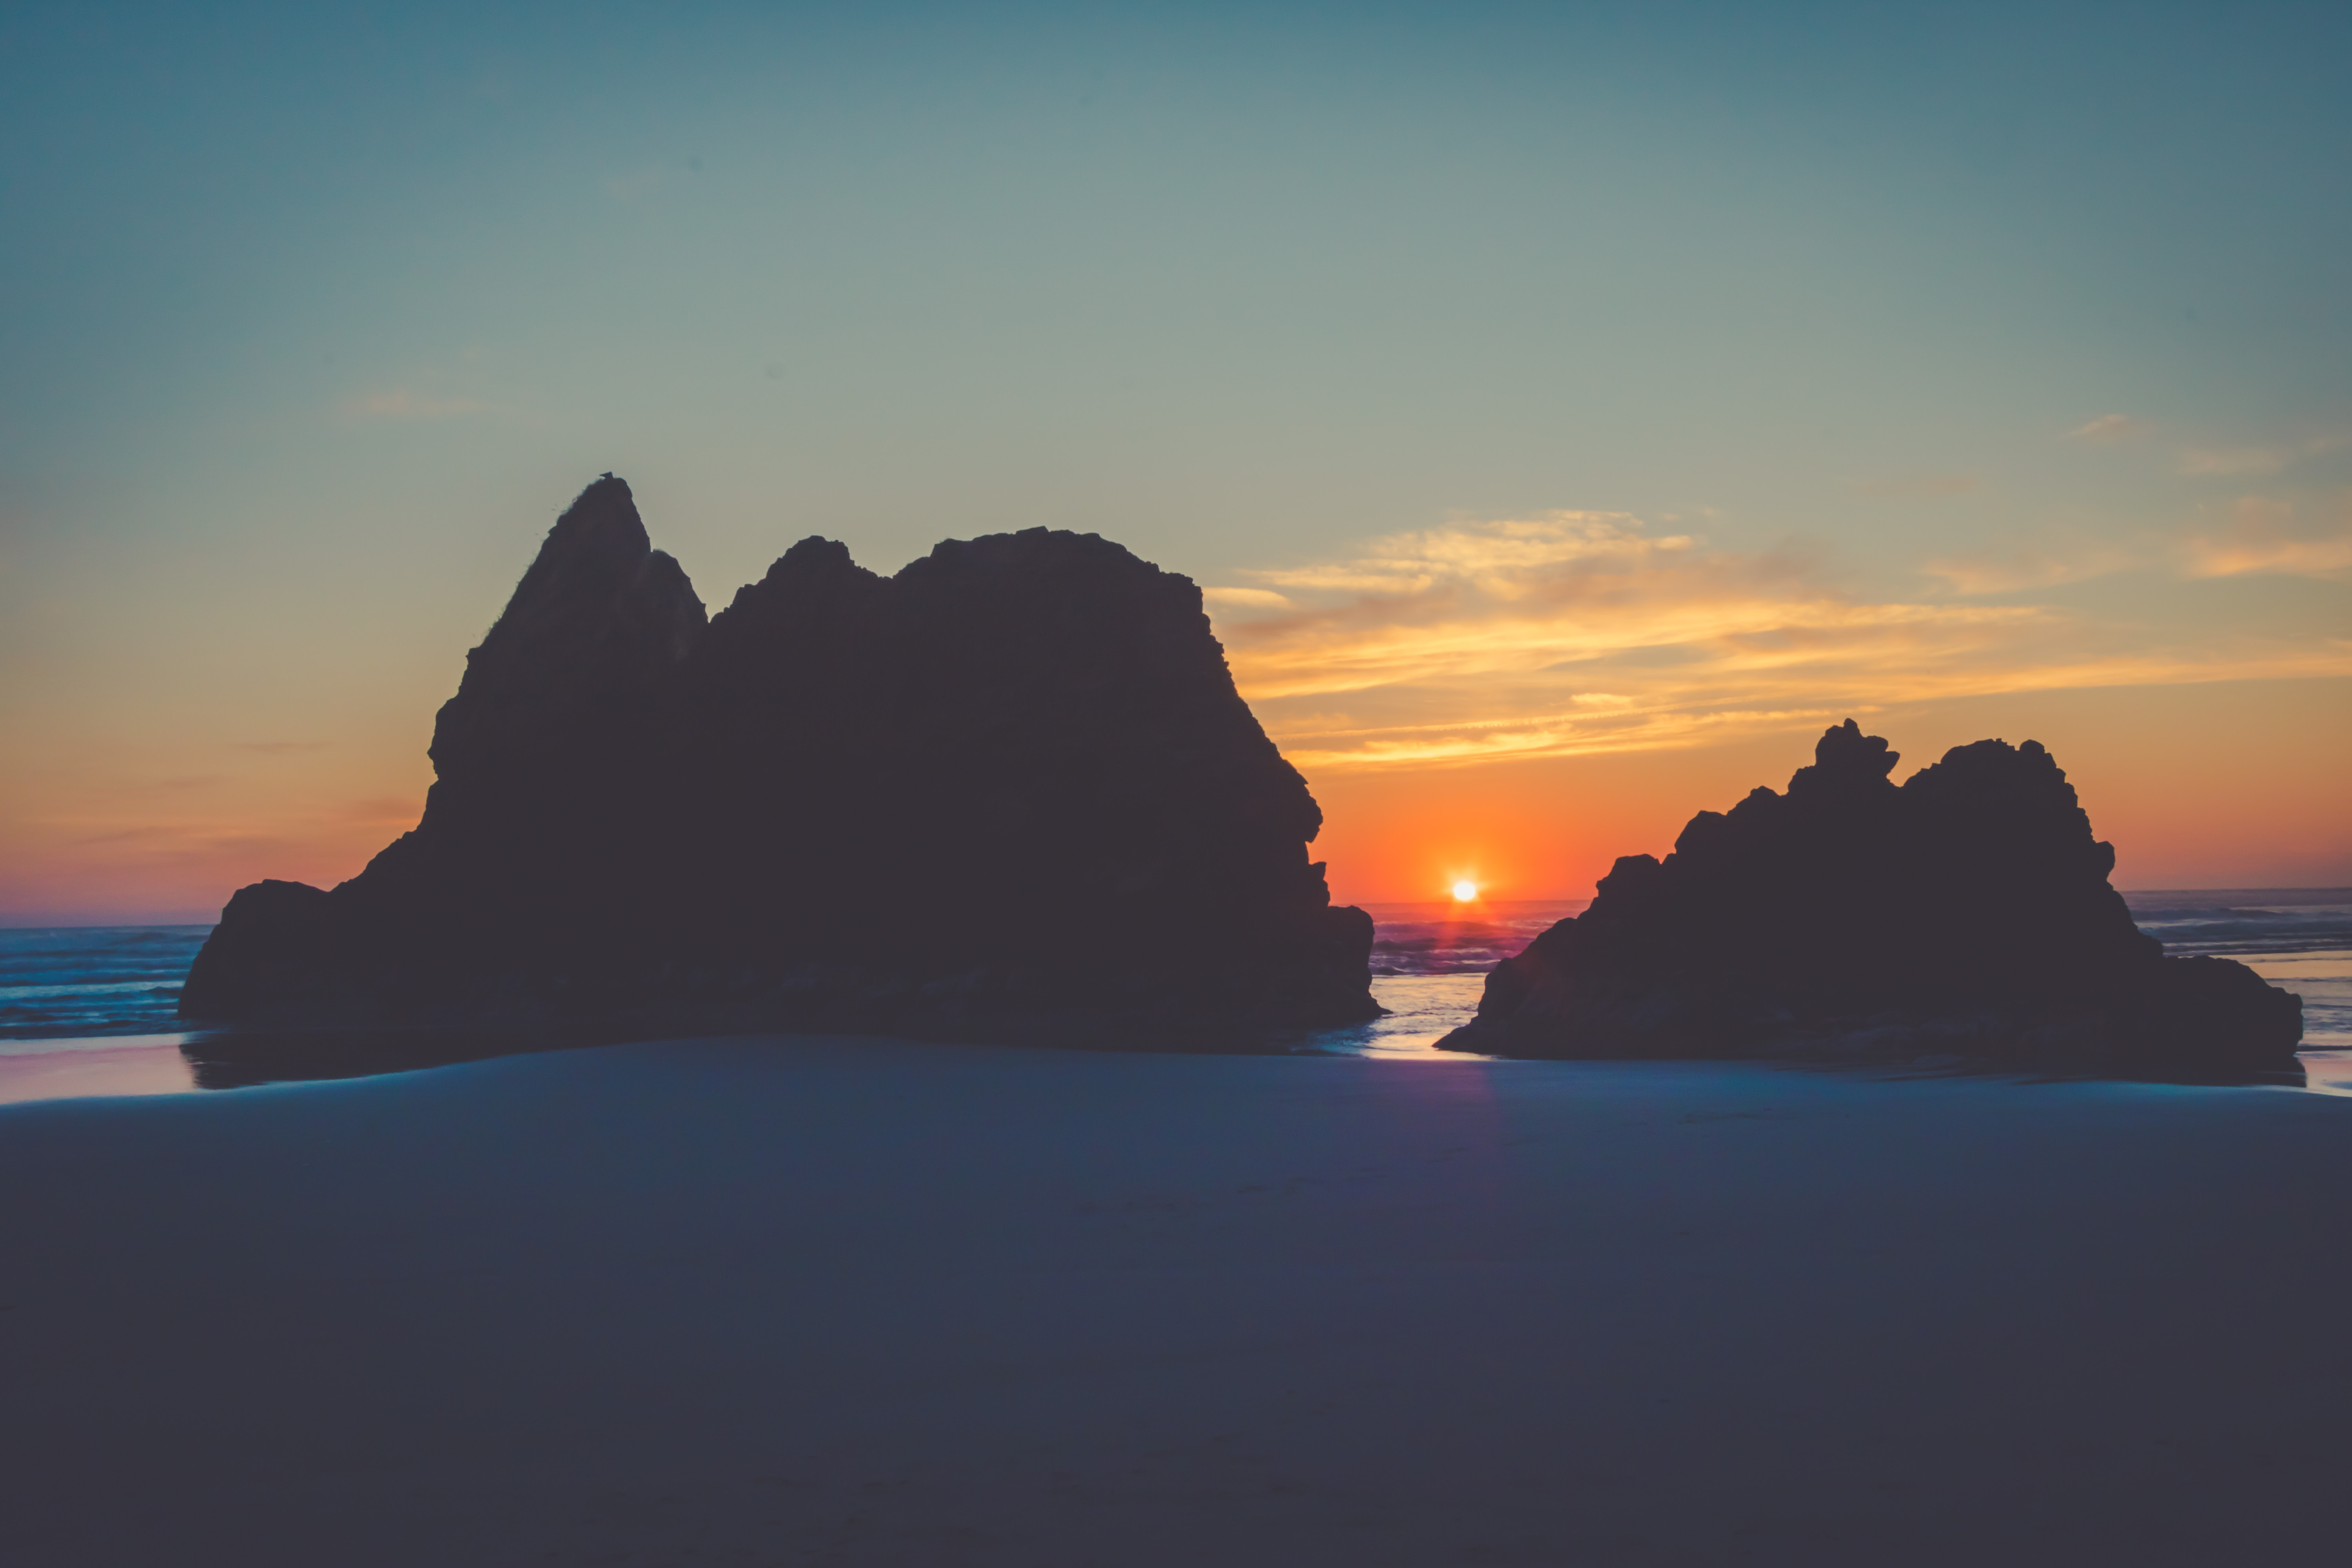 silhouette of island during sunset